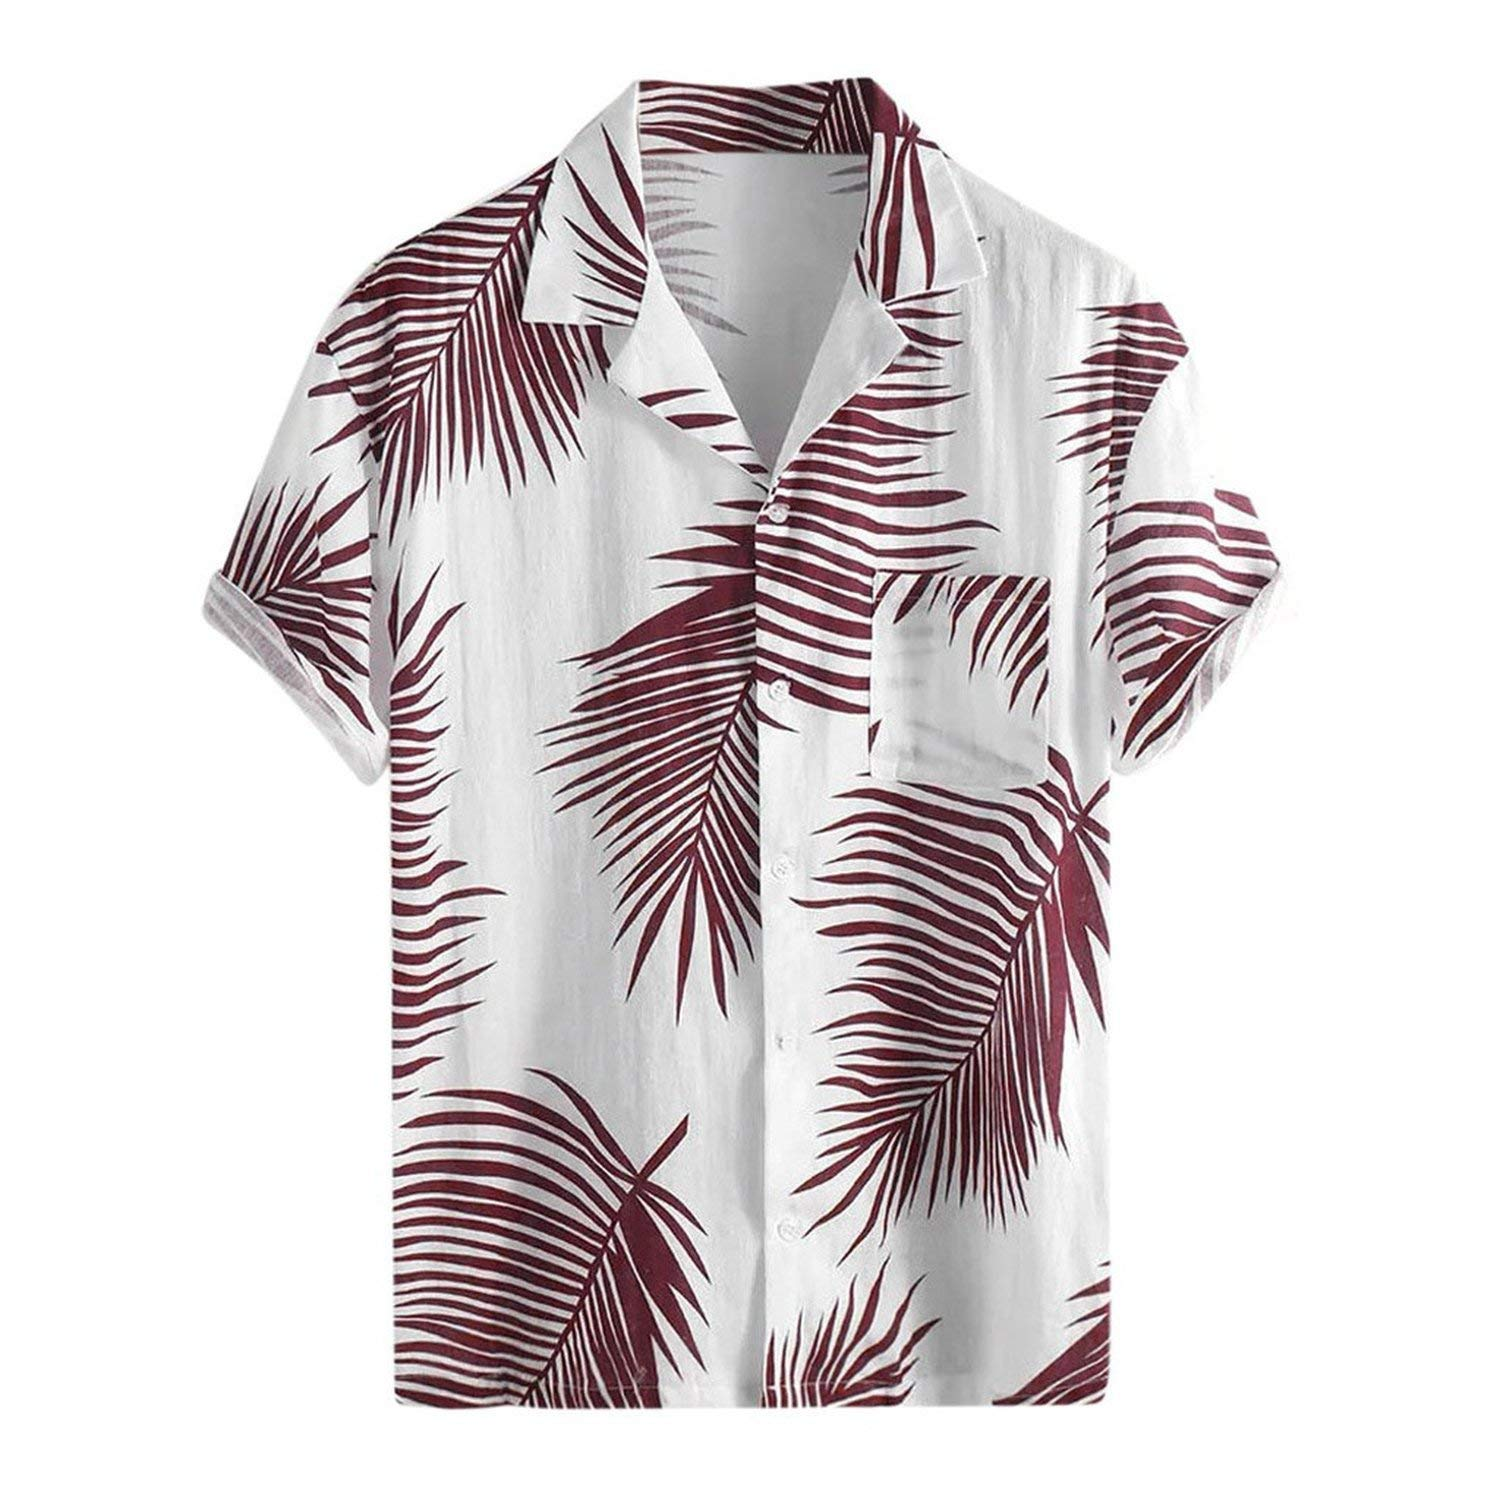 Mens Chemise Summer Button Hawaii Print Beach Pocket Short Sleeve Top Blouses,Red,M,C